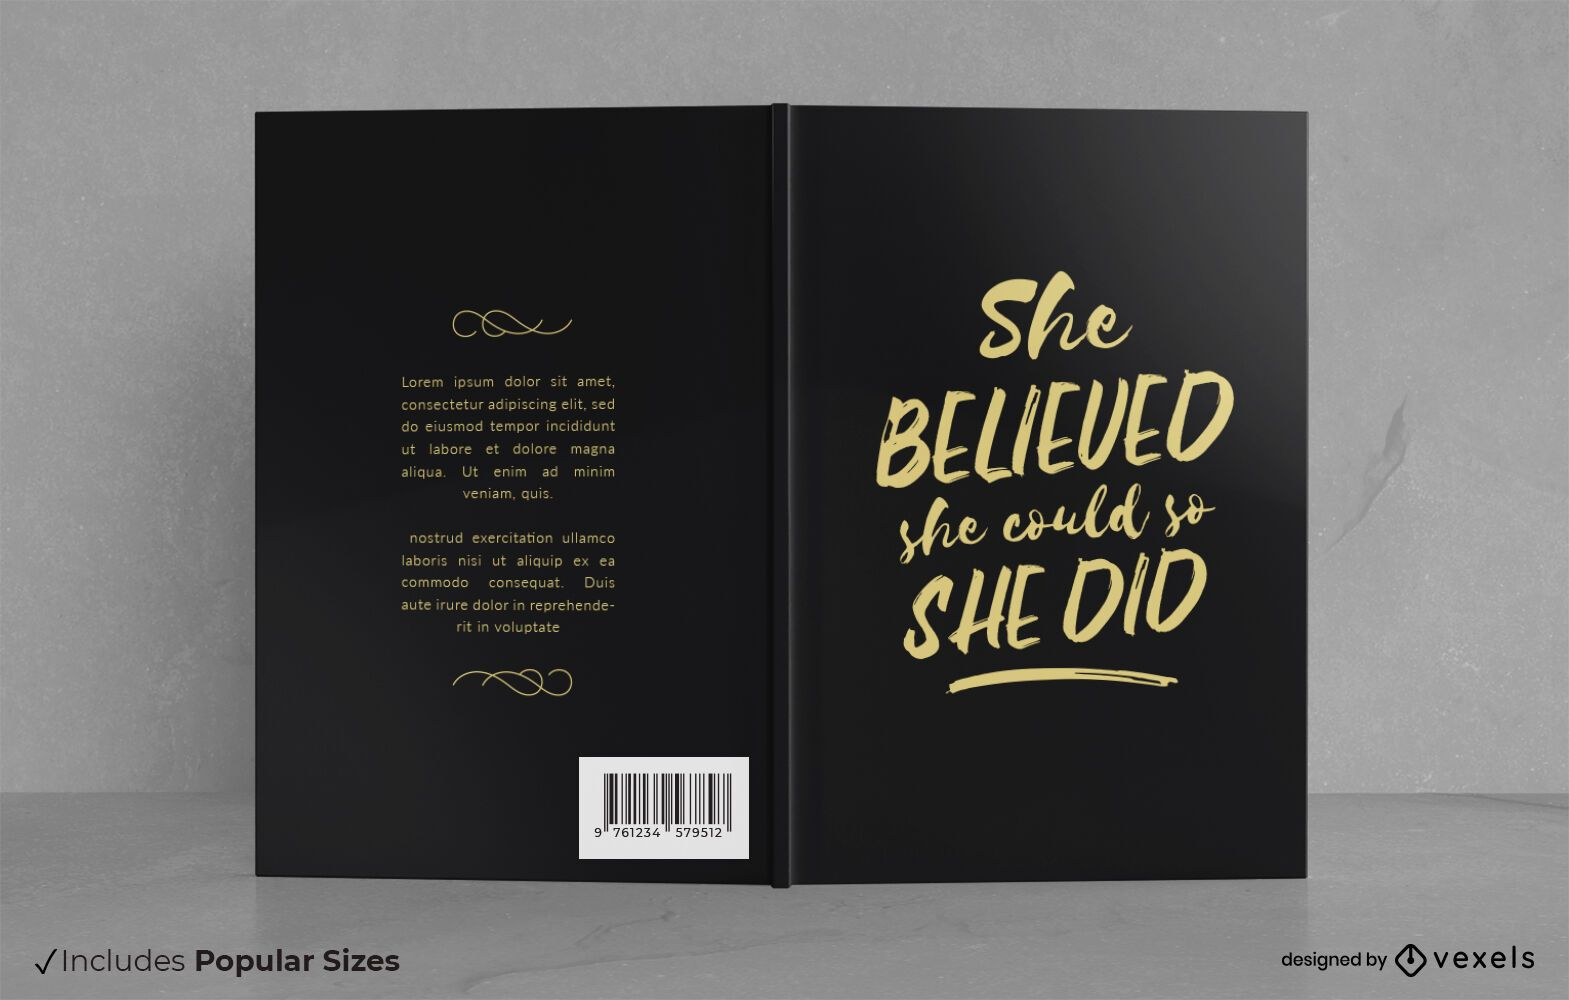 She believed book cover design